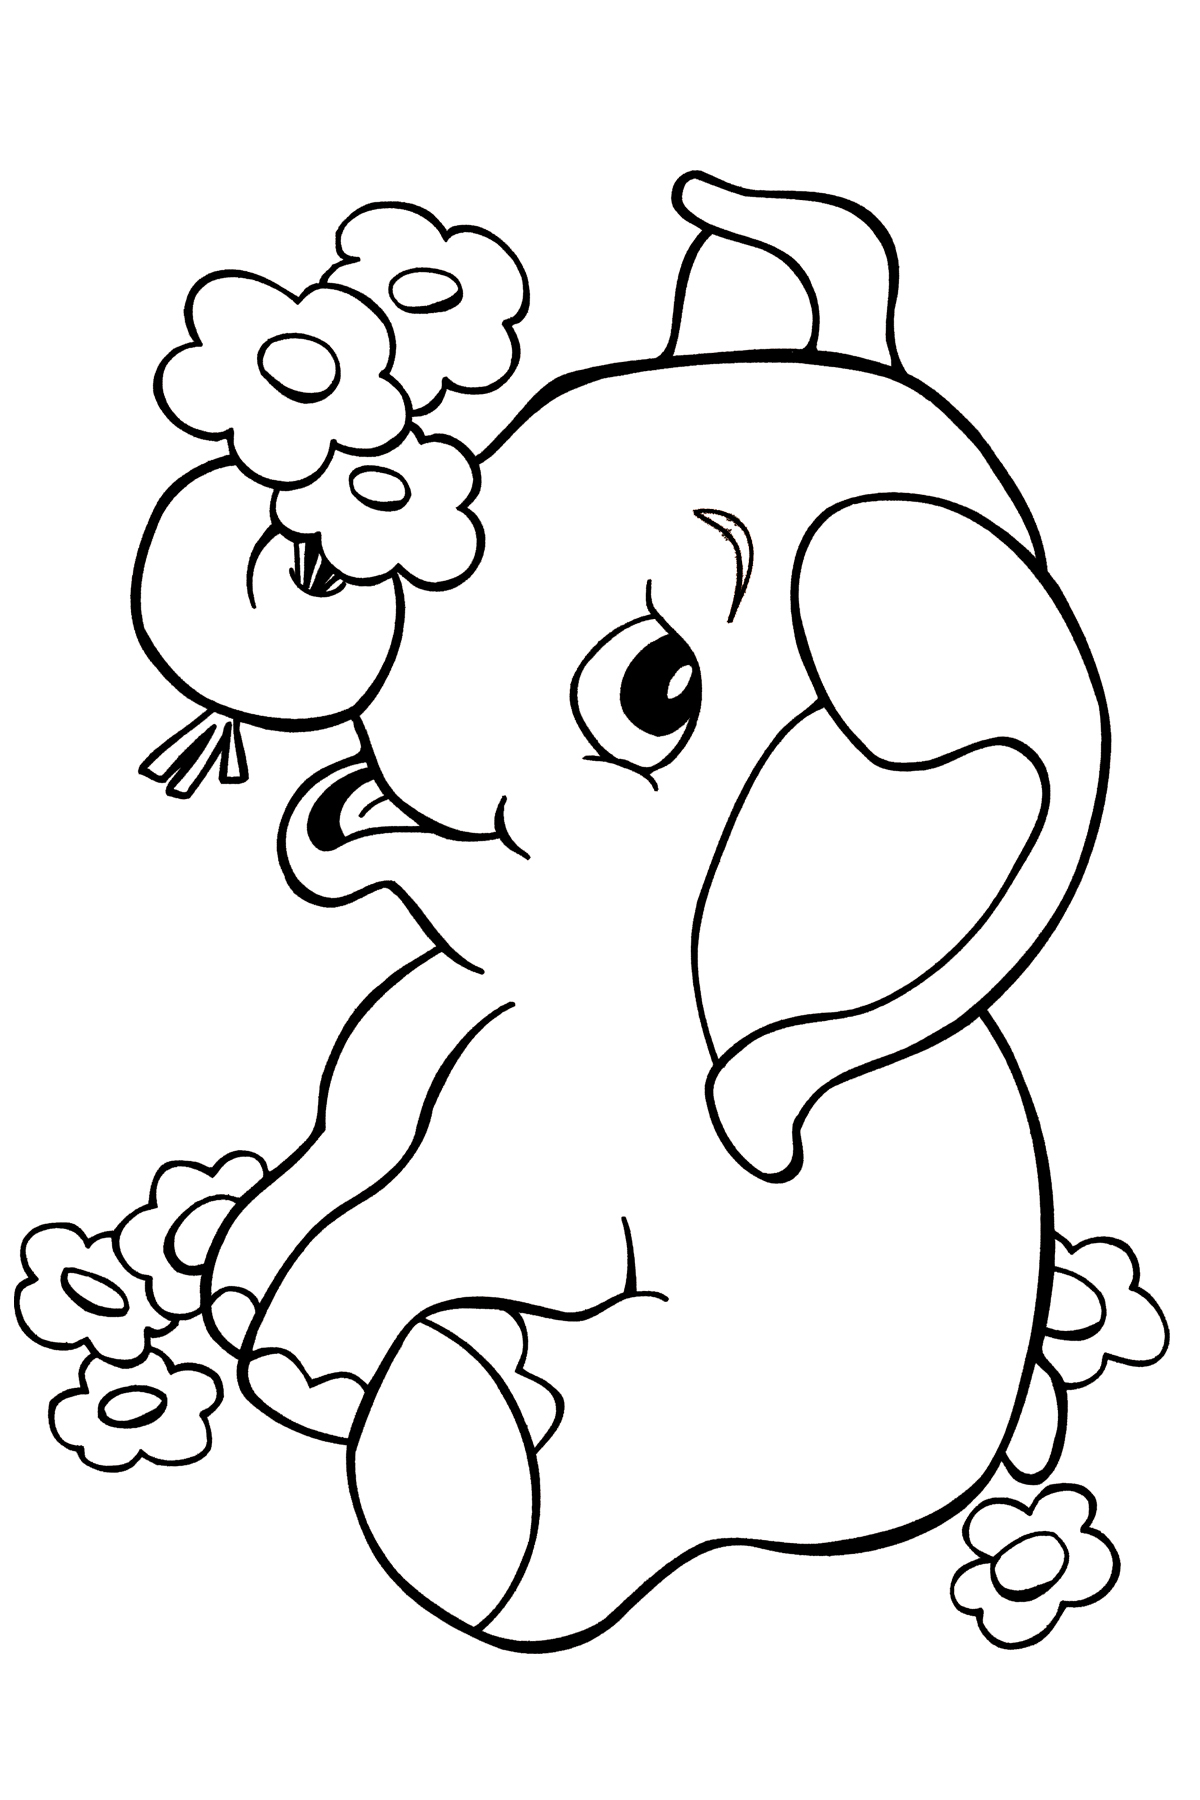 Free Coloring Pages Animals Elephants : Free printable elephant coloring pages for kids animal place